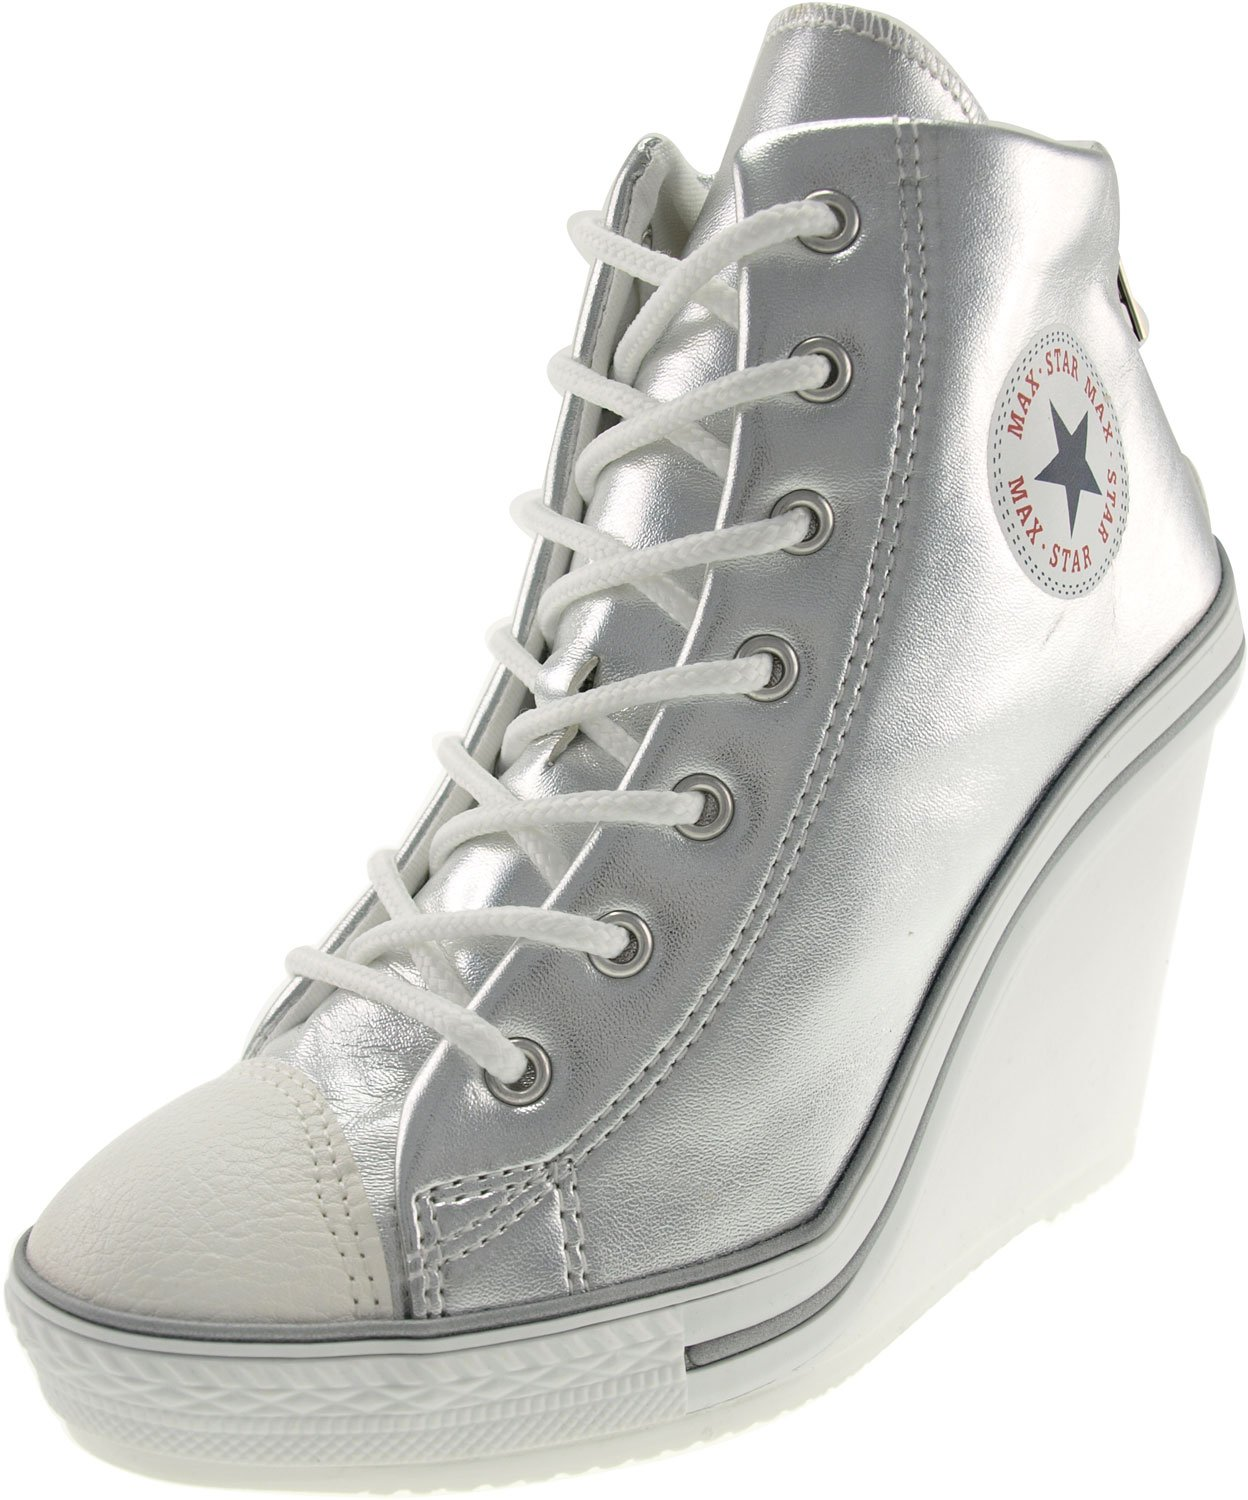 Maxstar Women's 777 Back Zipper PU High Wedge Heel Sneakers B00XTILZ7W 8.5 B(M) US|Silver